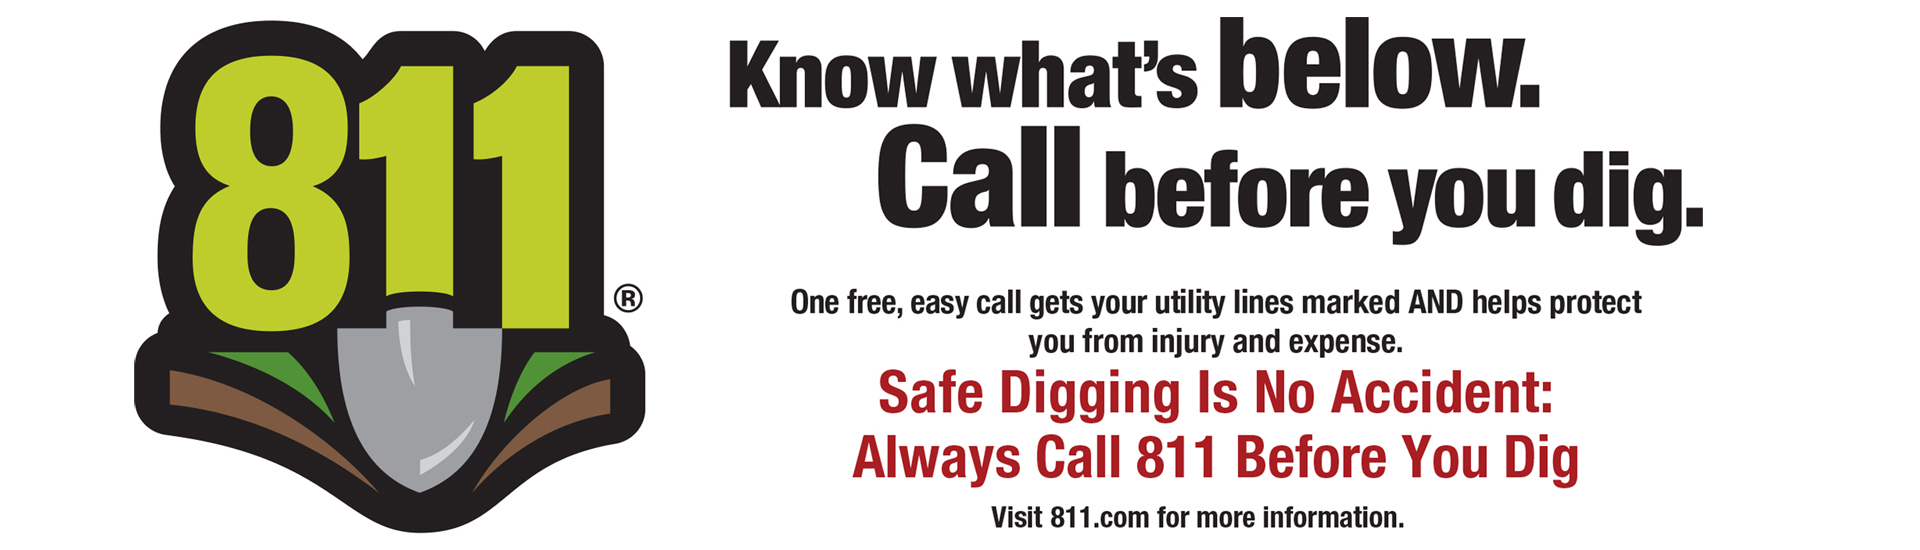 Call 811 before you dig to have underground lines located